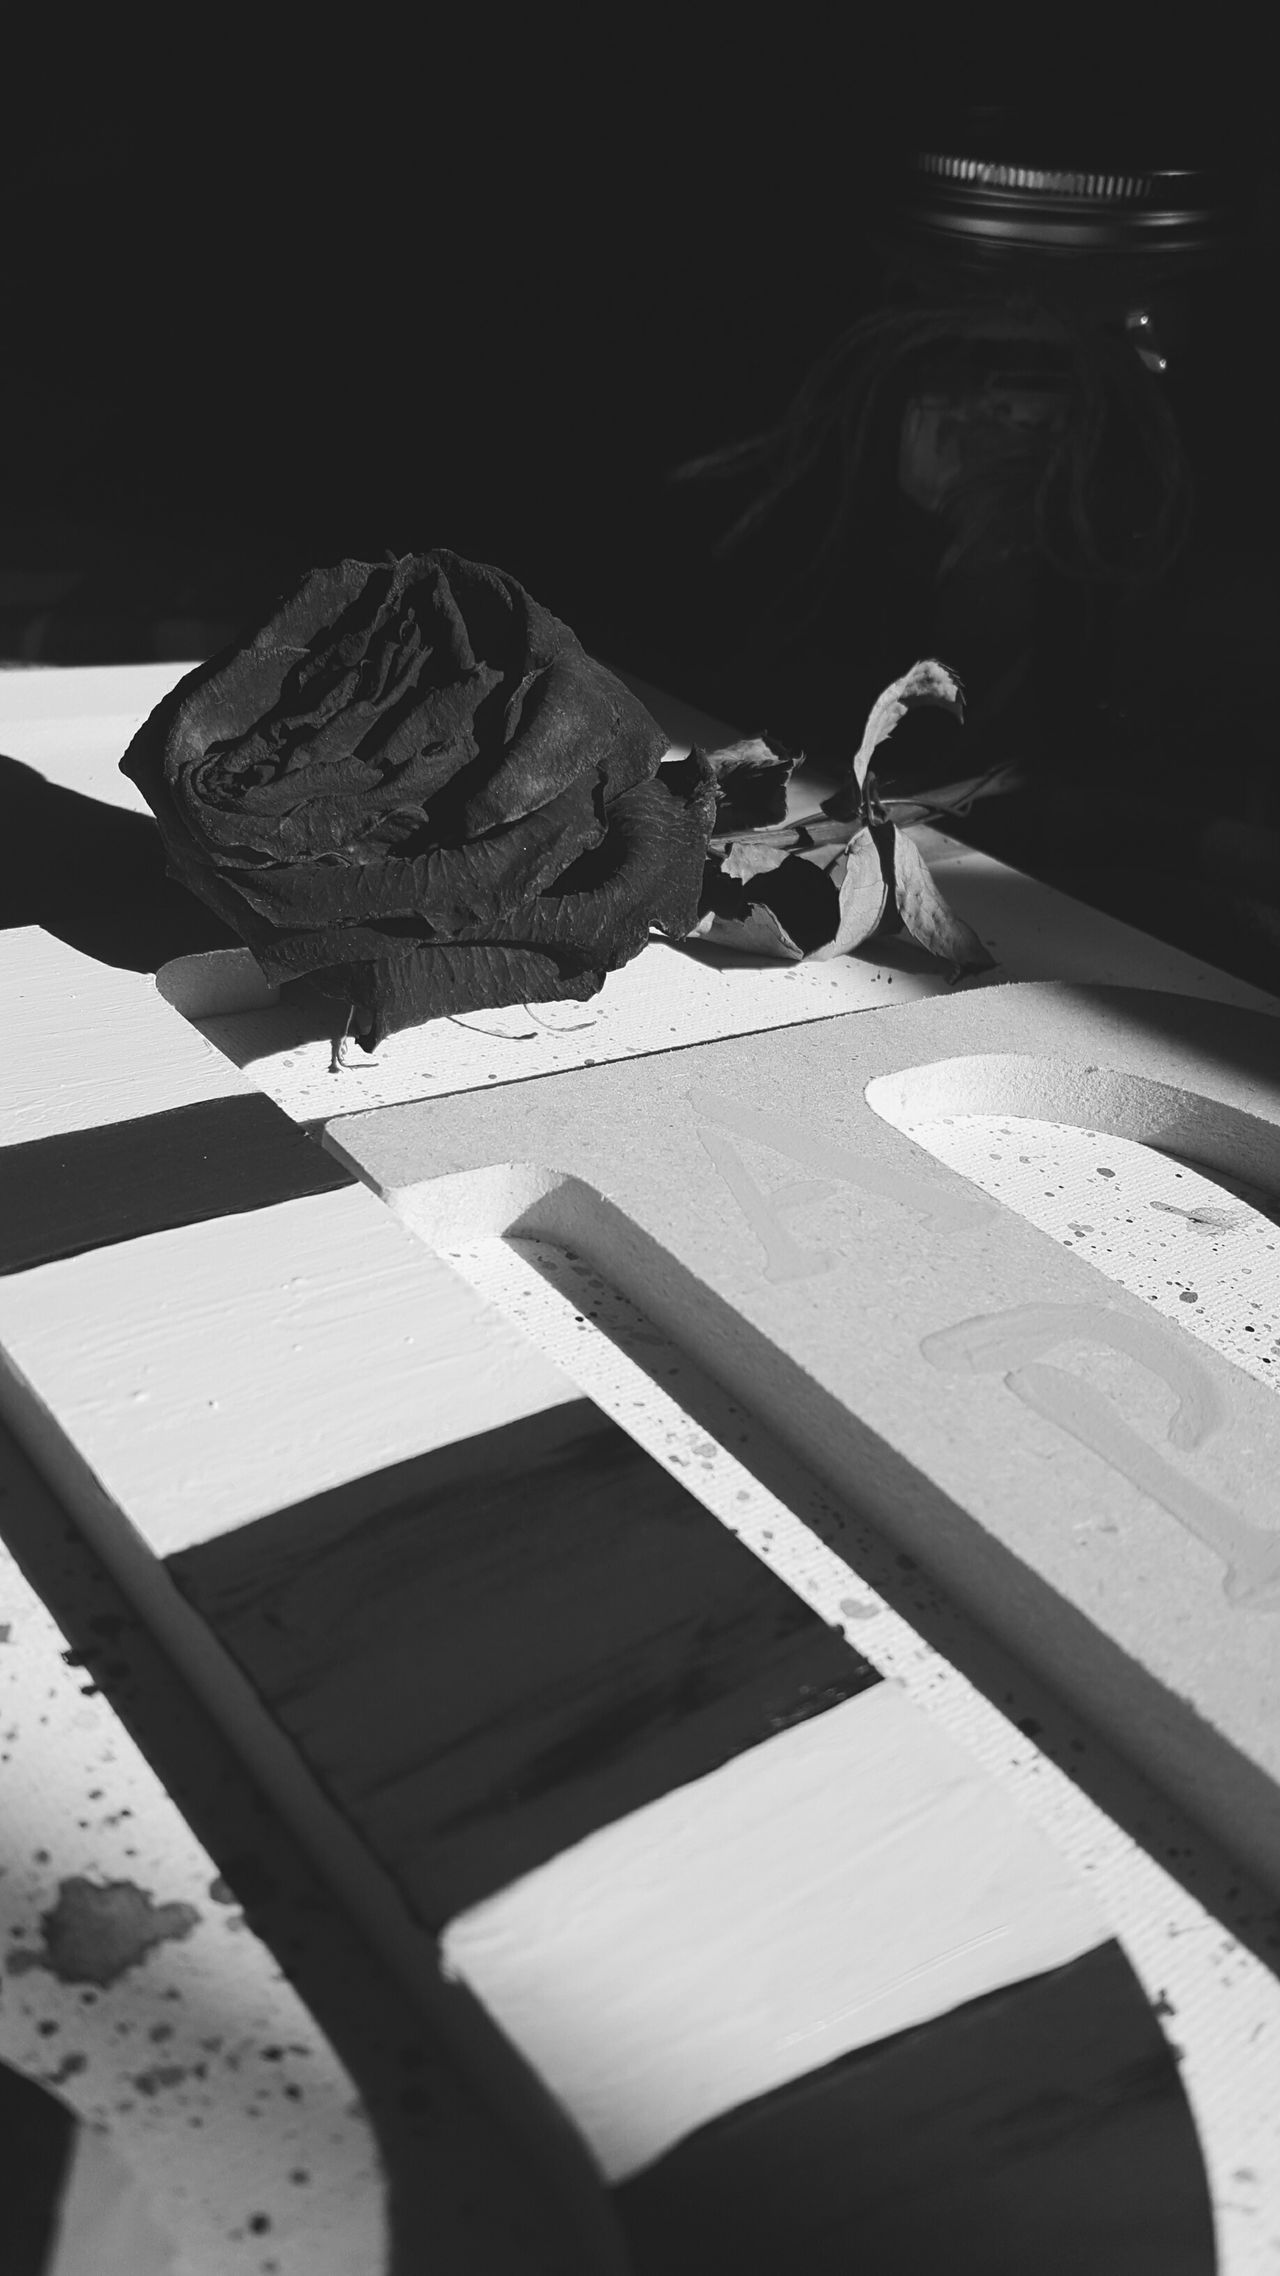 Check This Out Hello World Enjoying Life Black And White Photography Diy Project DIY Photo EyeEm Best Shots - Black + White Roses_collection Letters This Week On Eyeem This Makes Me Smile